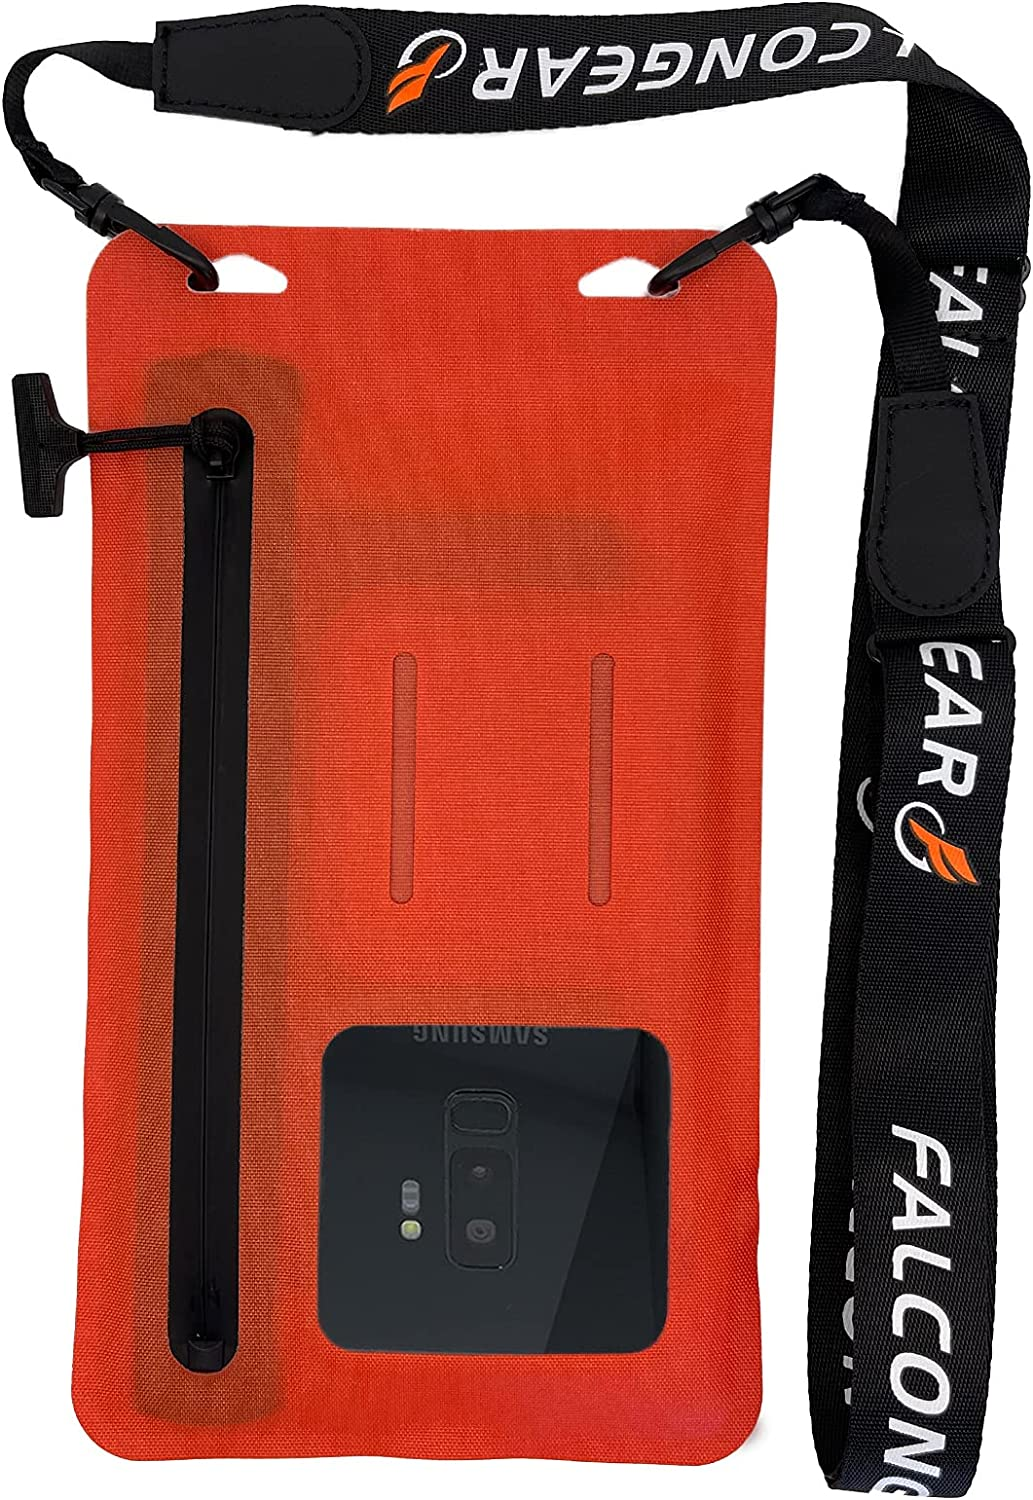 """FalconGear Floating Waterproof Phone Pouch Universal Waterproof Phone Case with Zipper & Adjustable Lanyard Cellphone Dry Bag for iPhone 12/11 Pro Max XR Galaxy S21/20 Ultra & Up to 7.5"""" (Orange-Red)"""